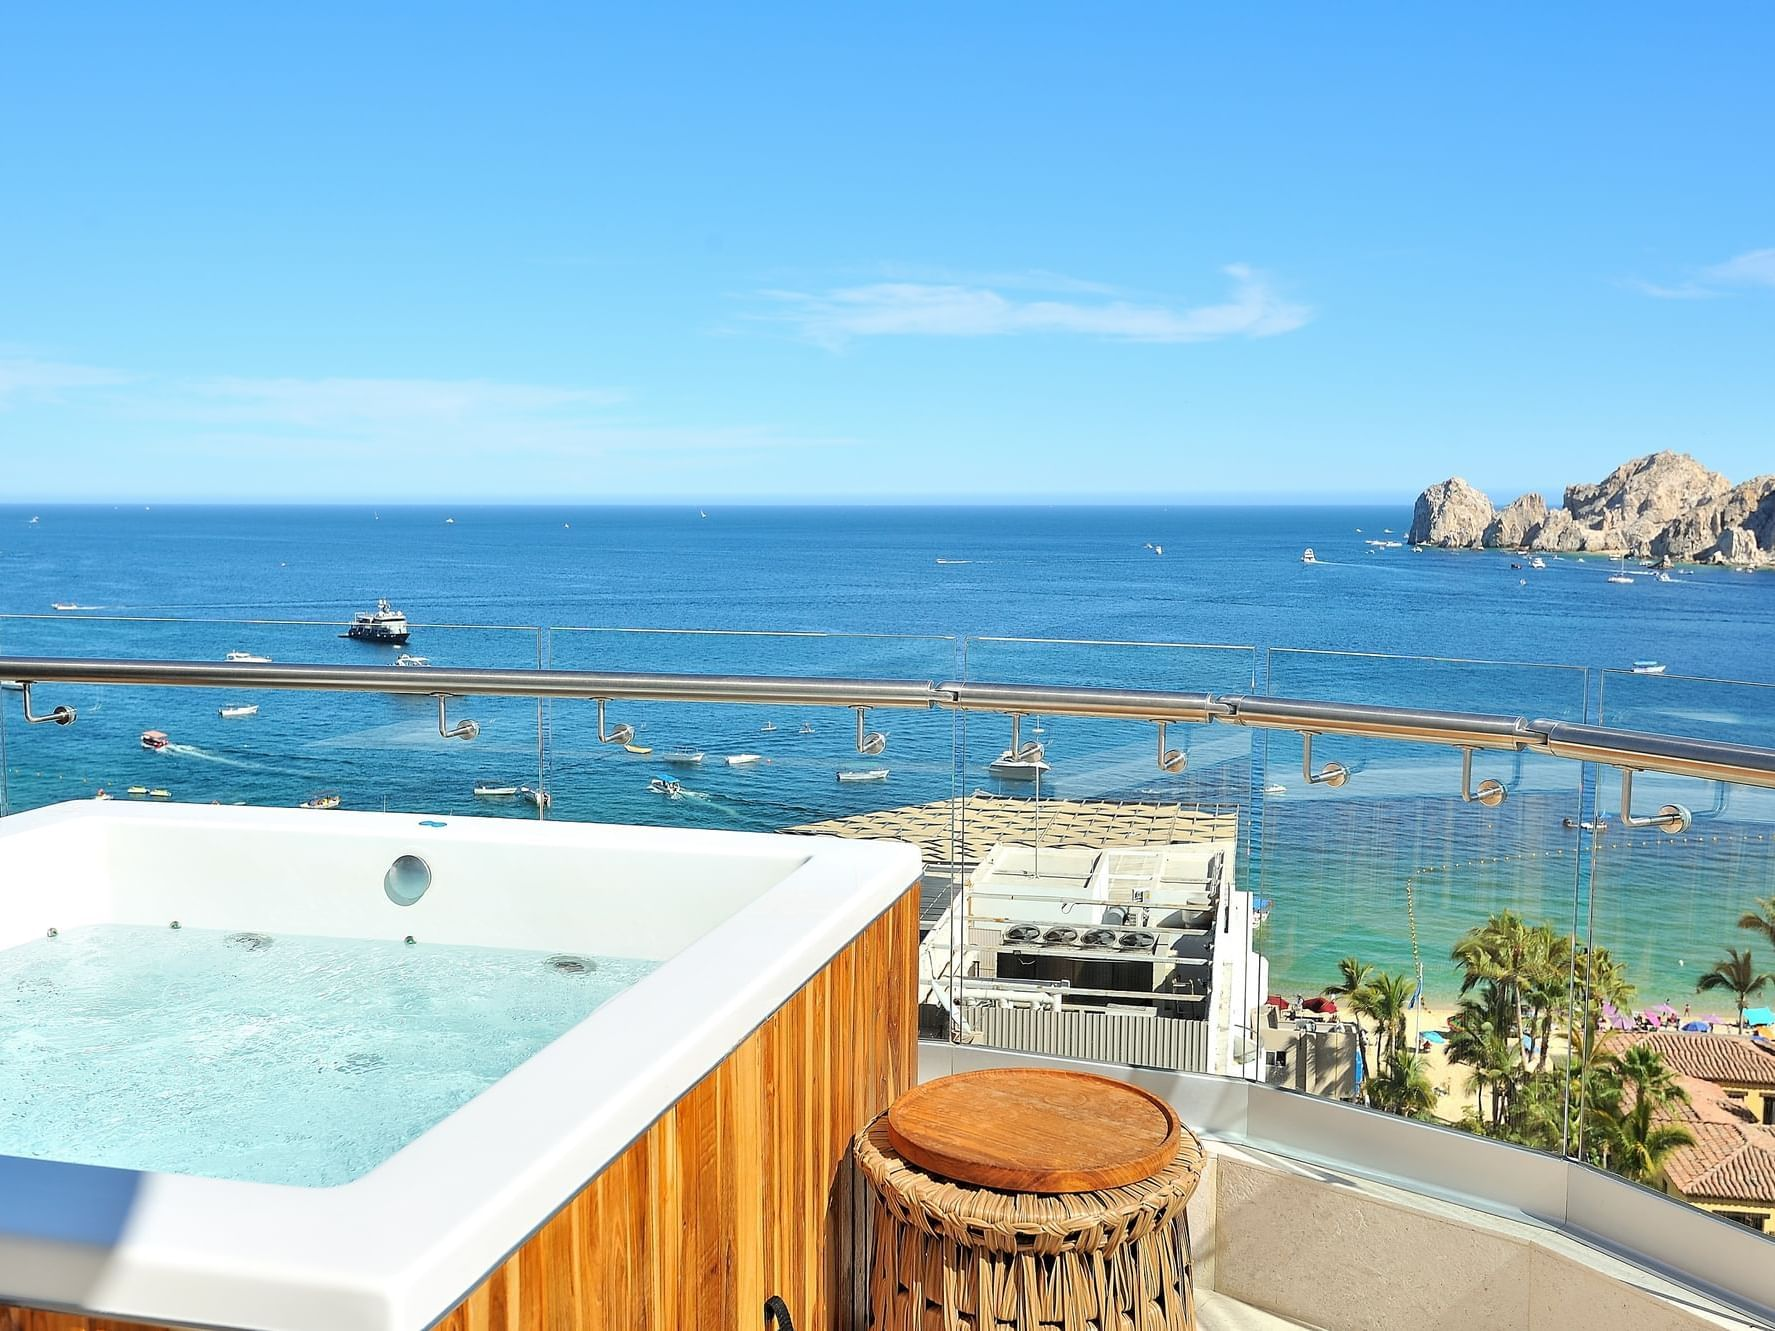 The Lands End Suite Balcony Jacuzzi at Cabo villas beach resort